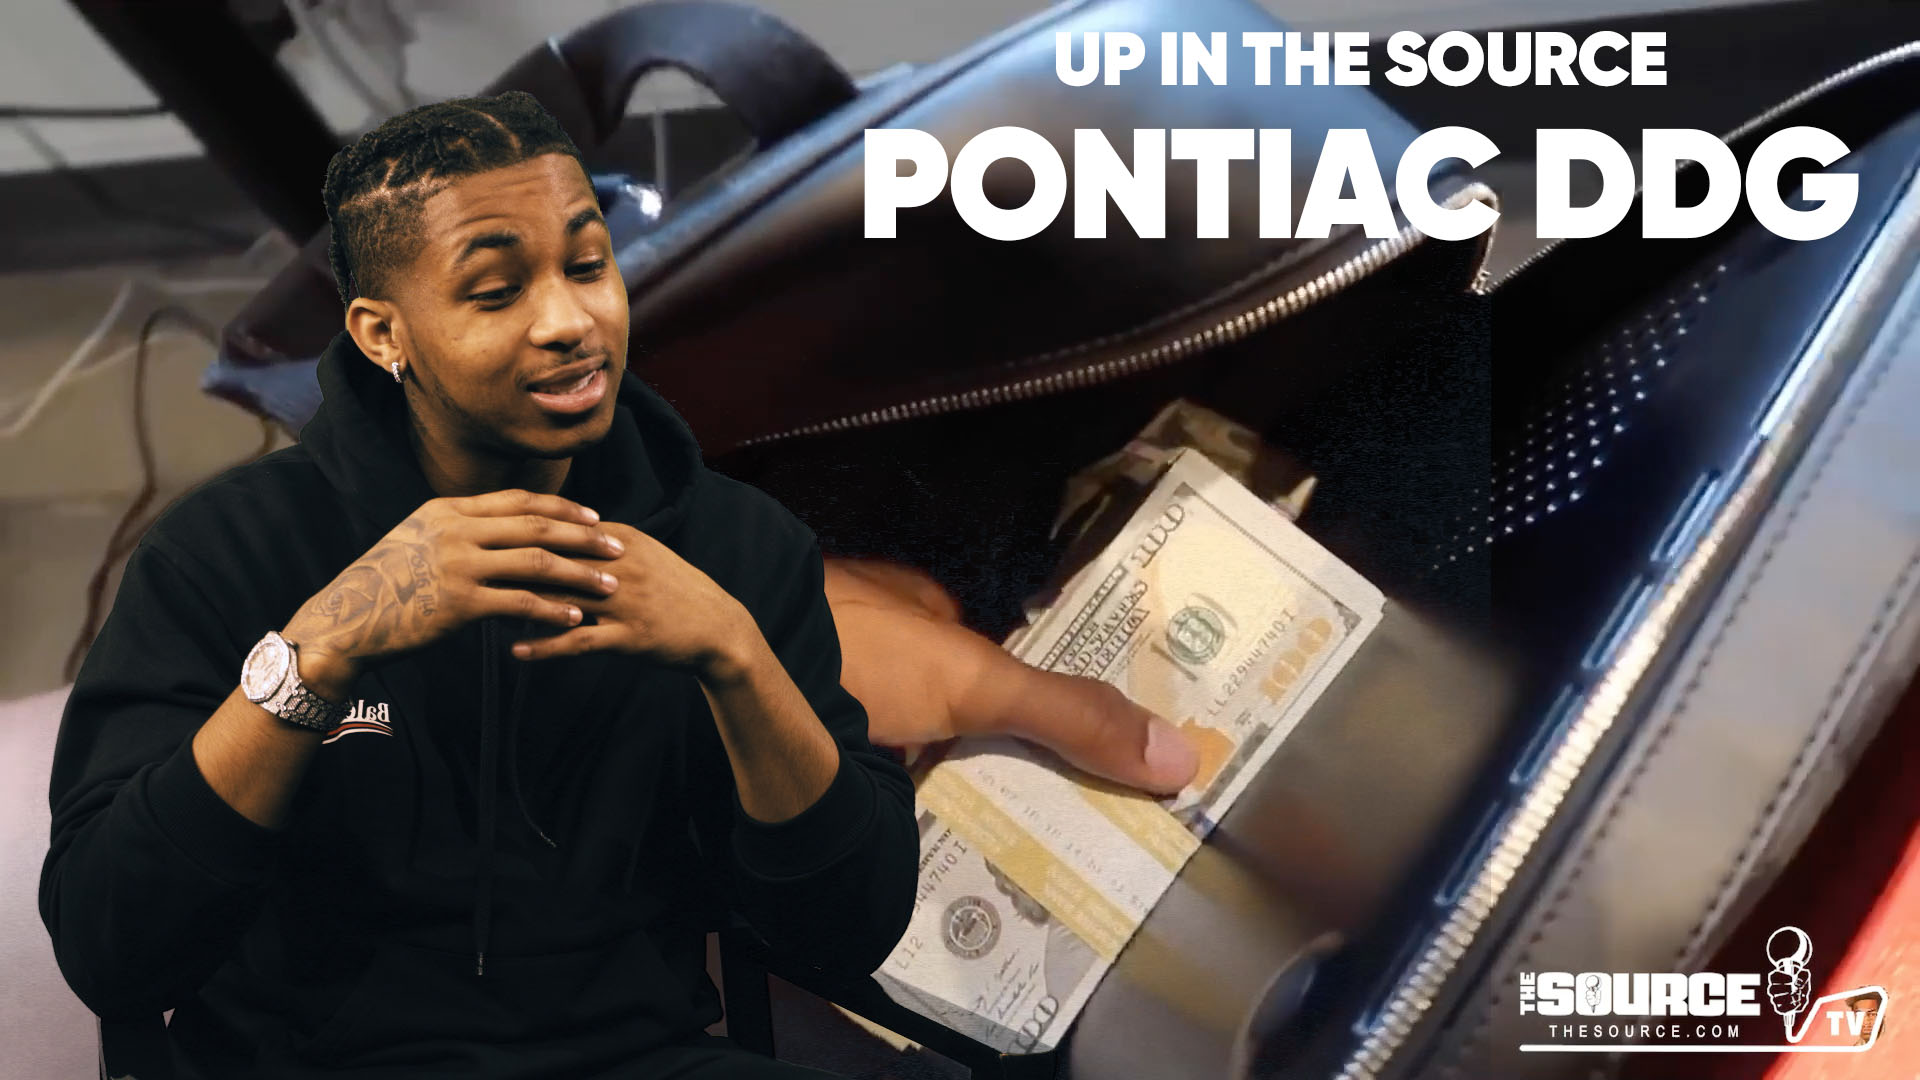 The Source Up In The Source Pontiac Made Ddg Speaks On Earning 50 000 A Month From Youtube